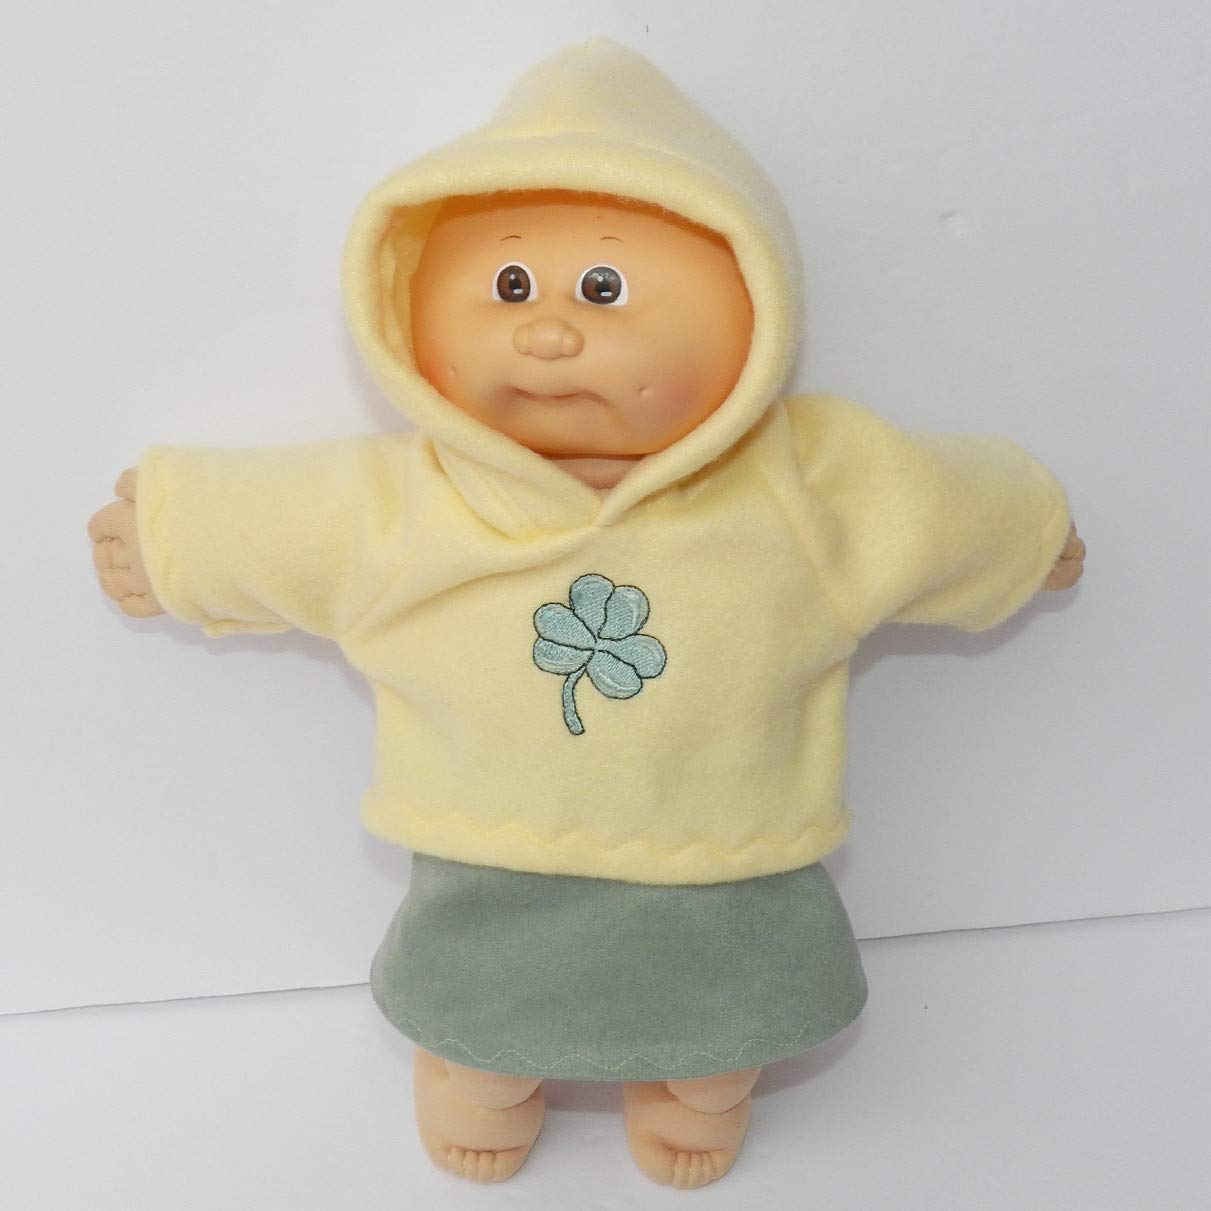 Cabbage Patch Doll Clothes 14 Inch or Preemie Size Yellow Shamrock Sweatshirt and Skirt Clothes Only